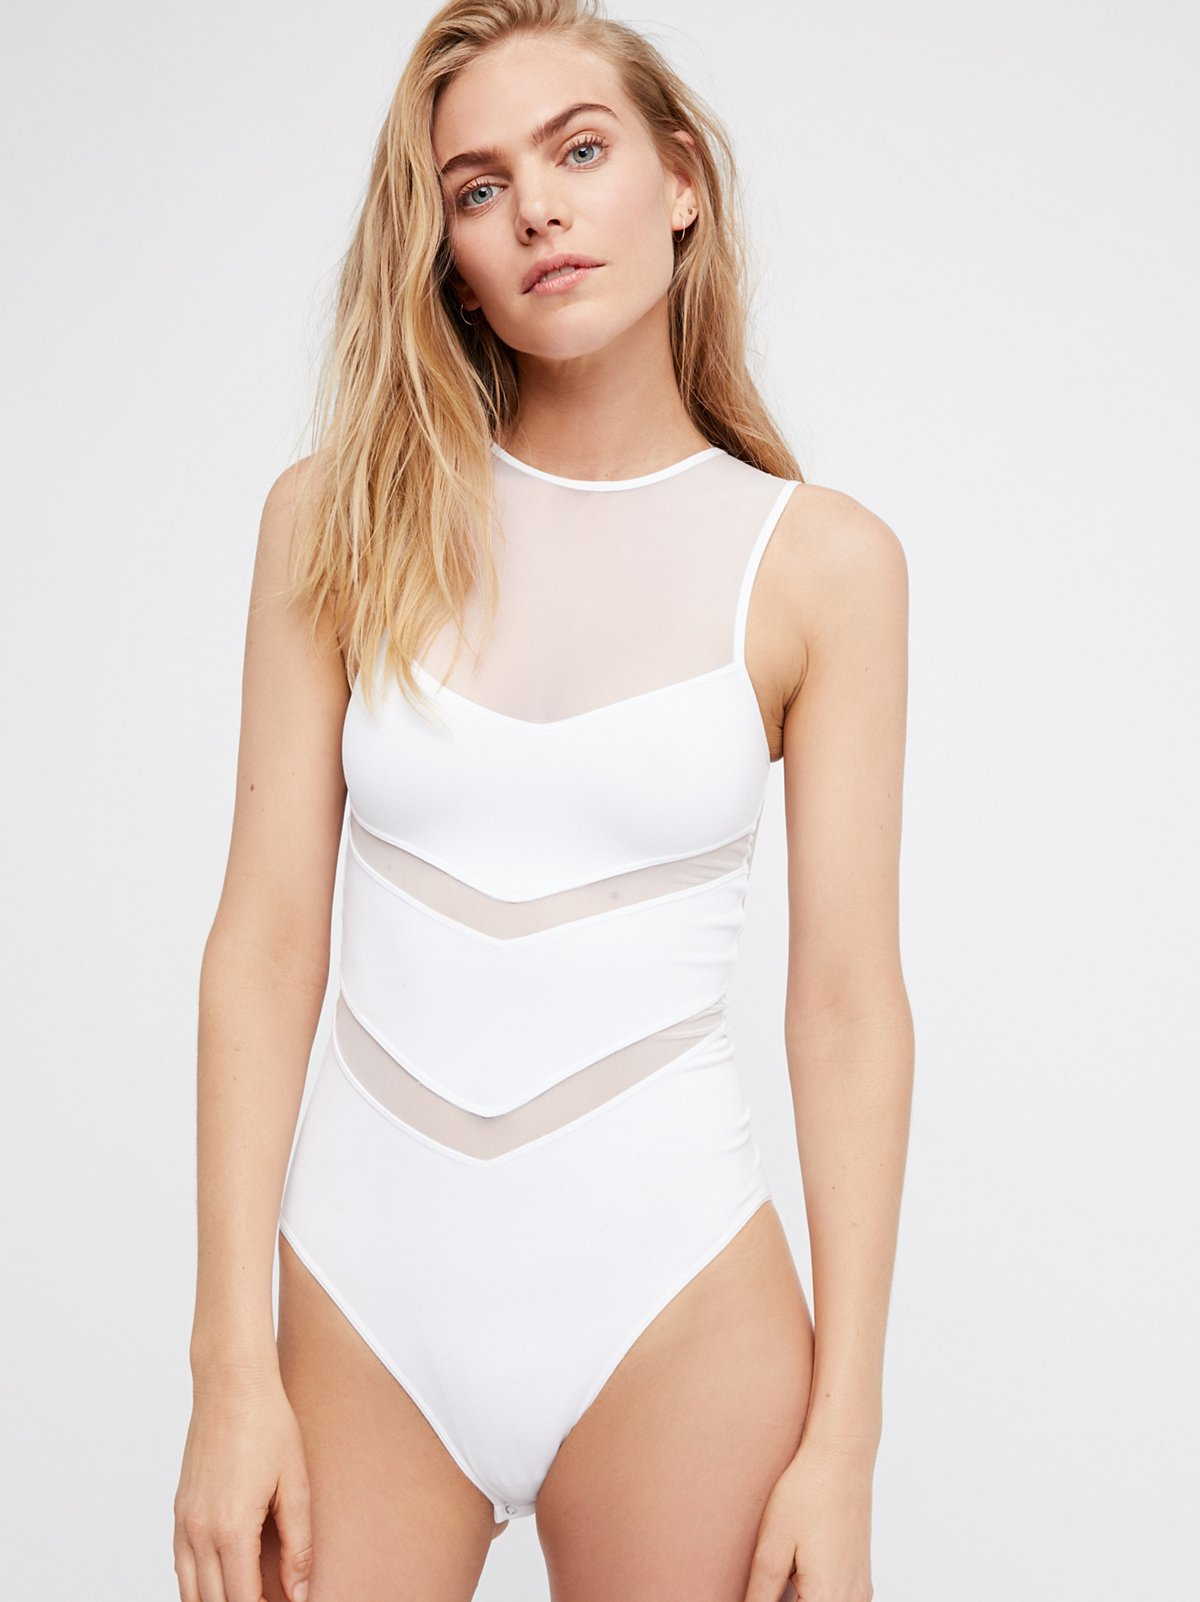 From the Top Bodysuit